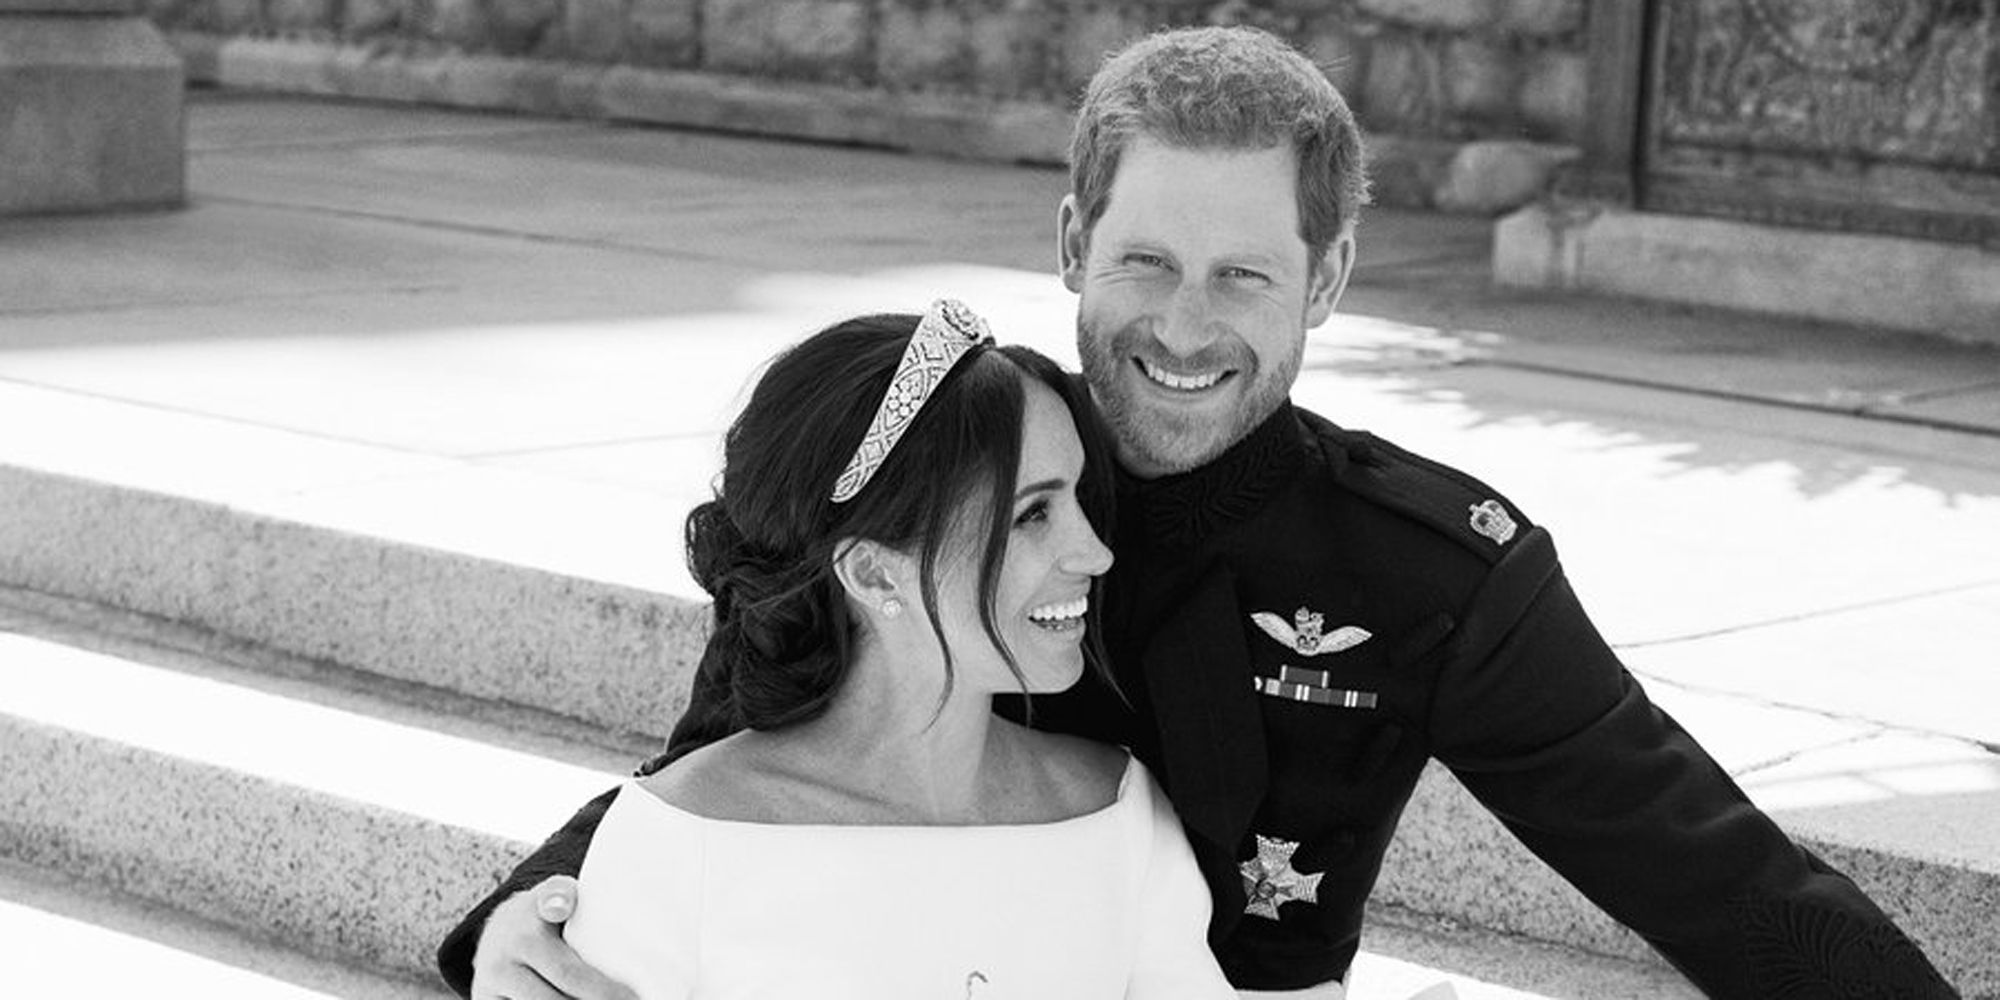 prince harry and meghan markle s official royal wedding portraits released alexi lubomirski portraits prince harry and meghan markle s